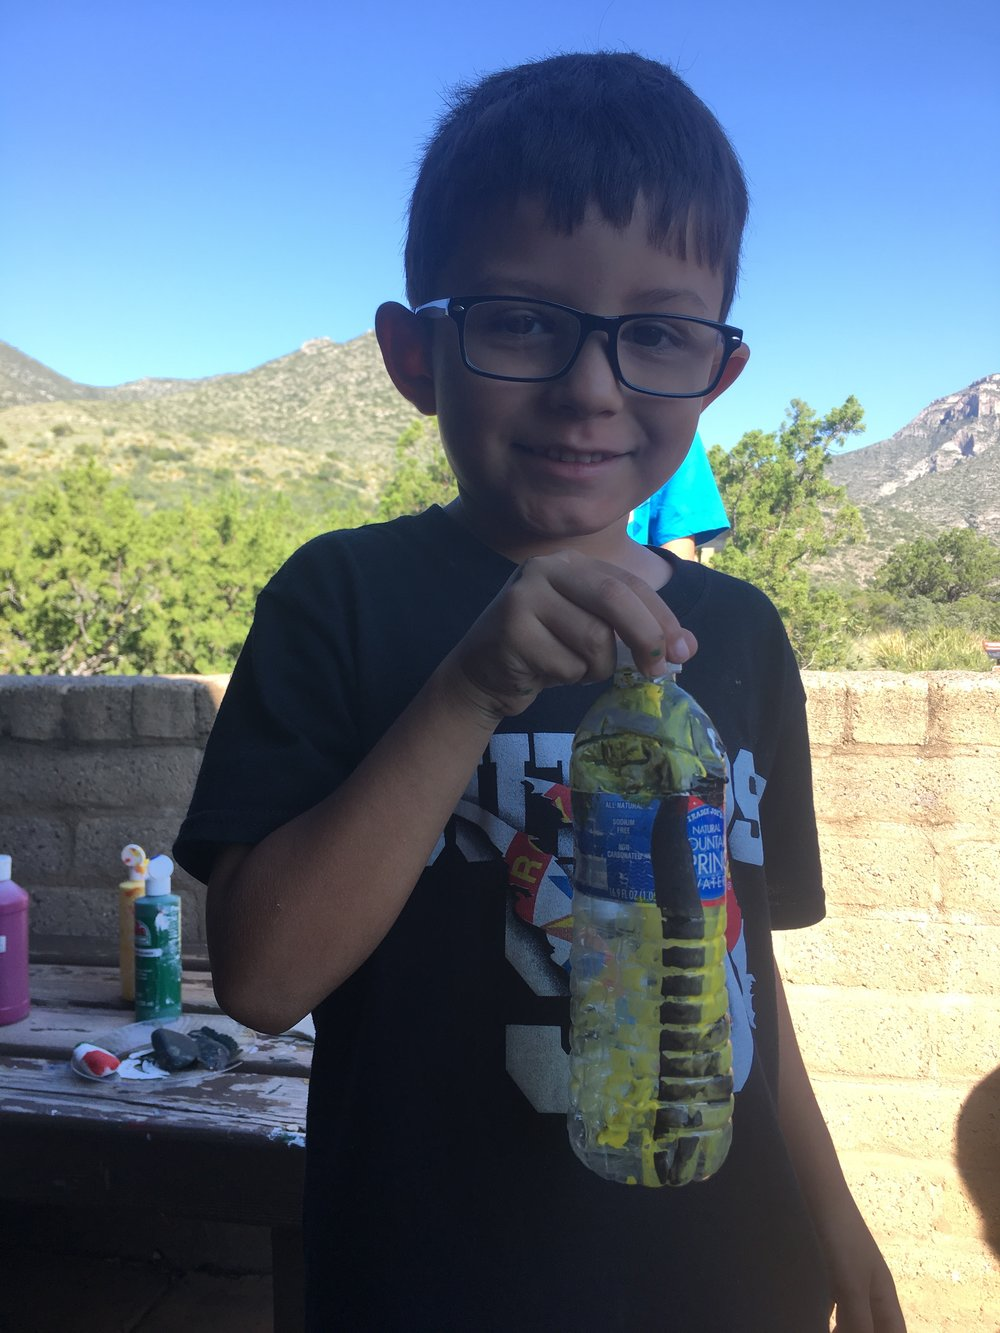 He made a minion on an old water bottle!